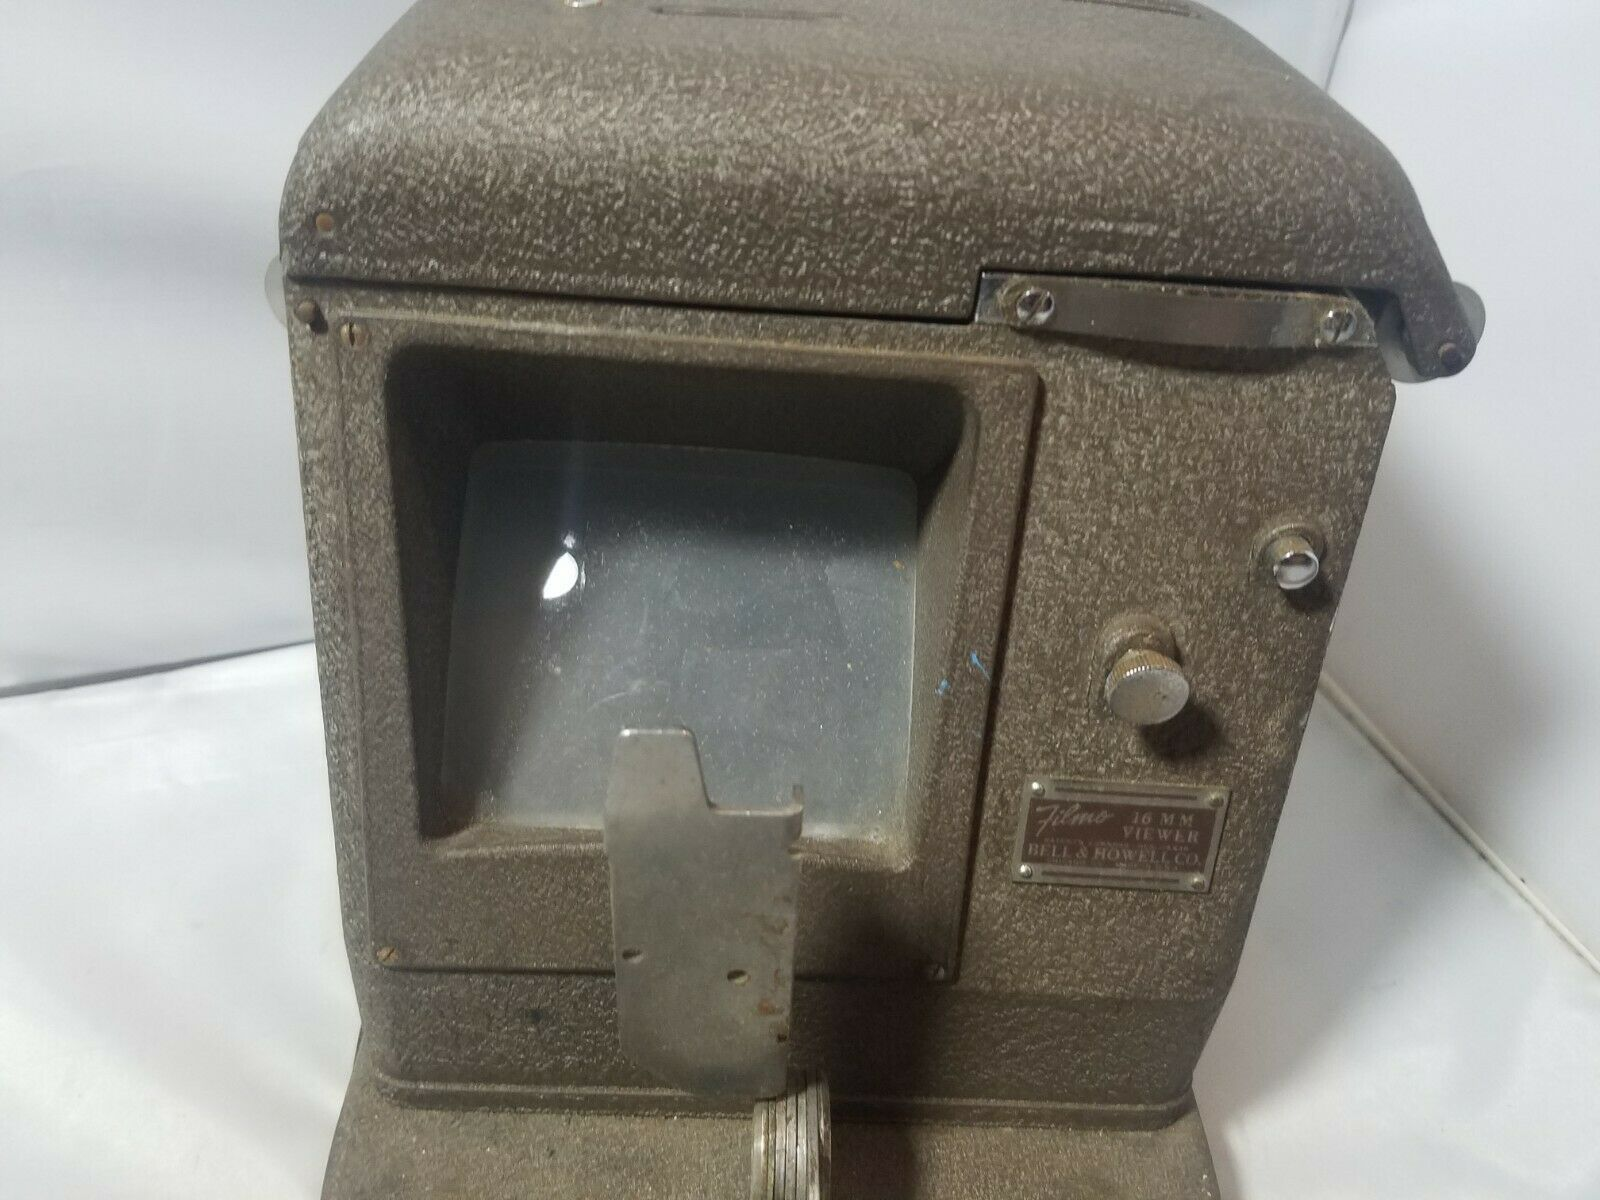 Vintage Bell & Howell Filmo 16mm Film Visualizzatore 146-A 115 Volt AC/Dc